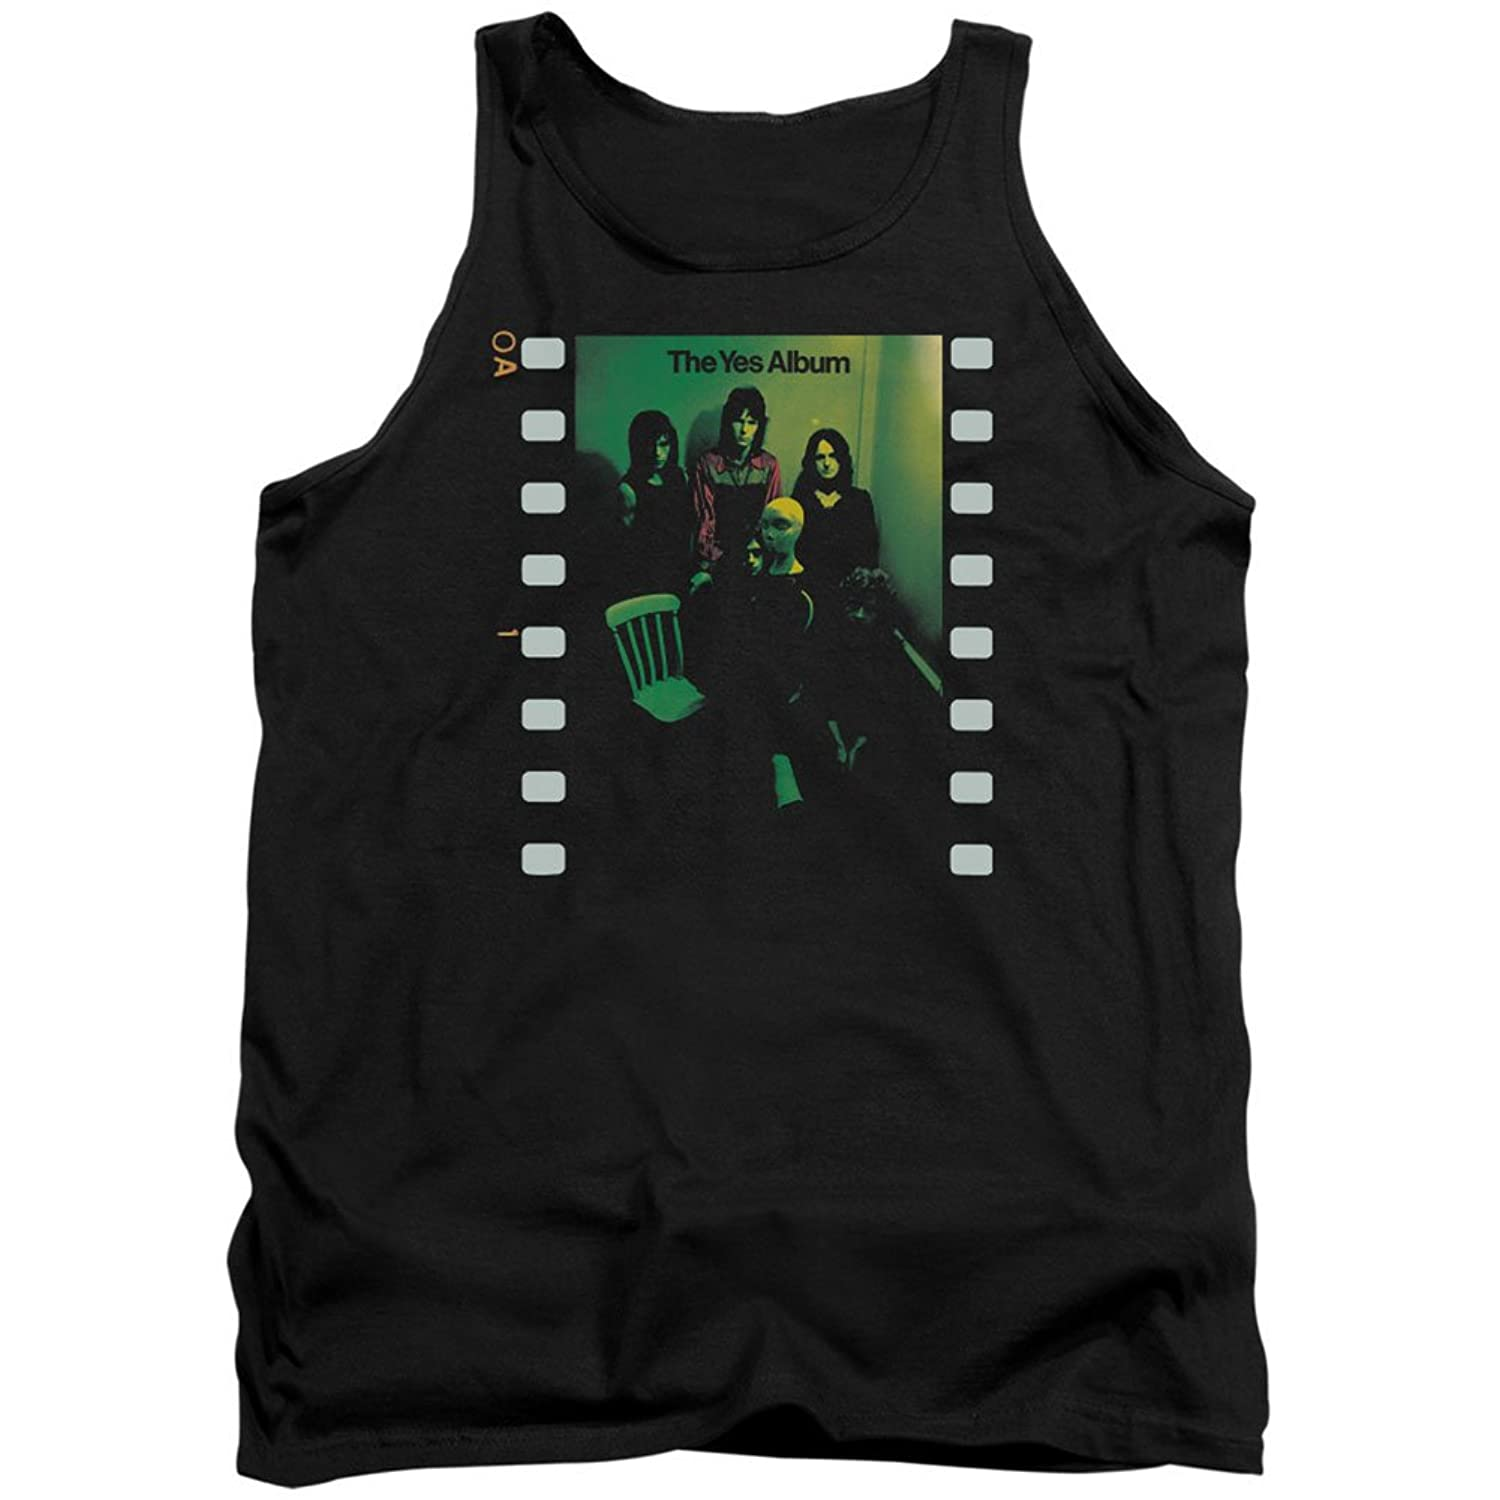 Yes Rock Band Music Group The Yes Album Adult Tank Top Shirt